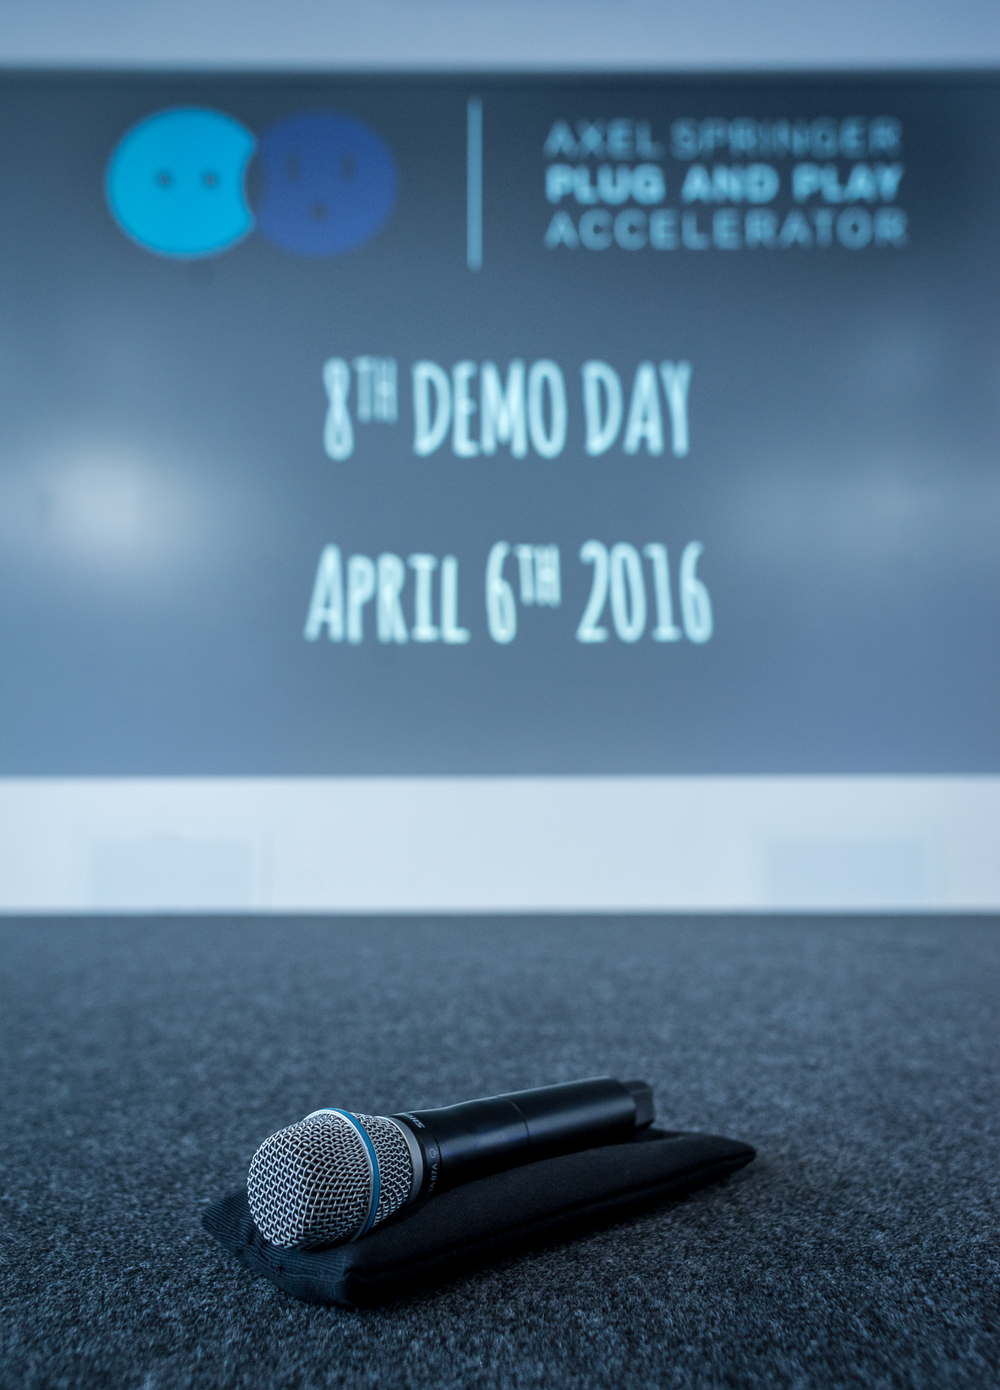 Program8 DemoDay Axel Springer Plug and Play Accelerator Berlin